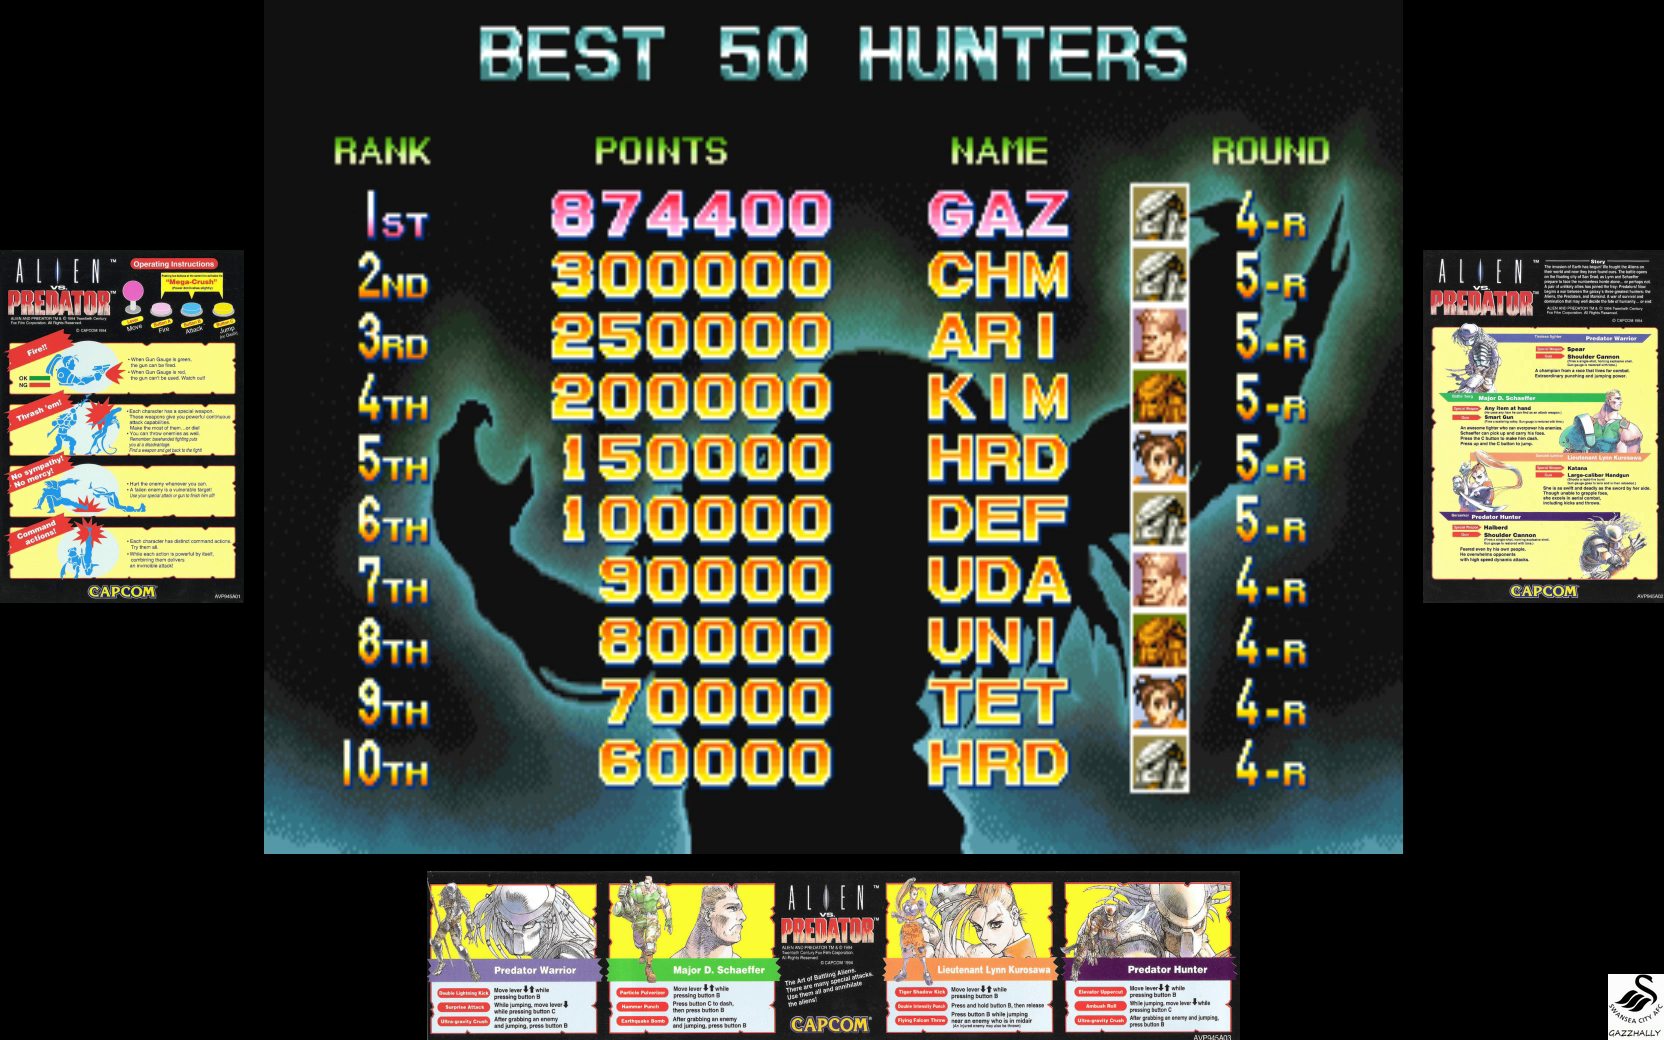 Alien Vs. Predator [avsp] 874,400 points